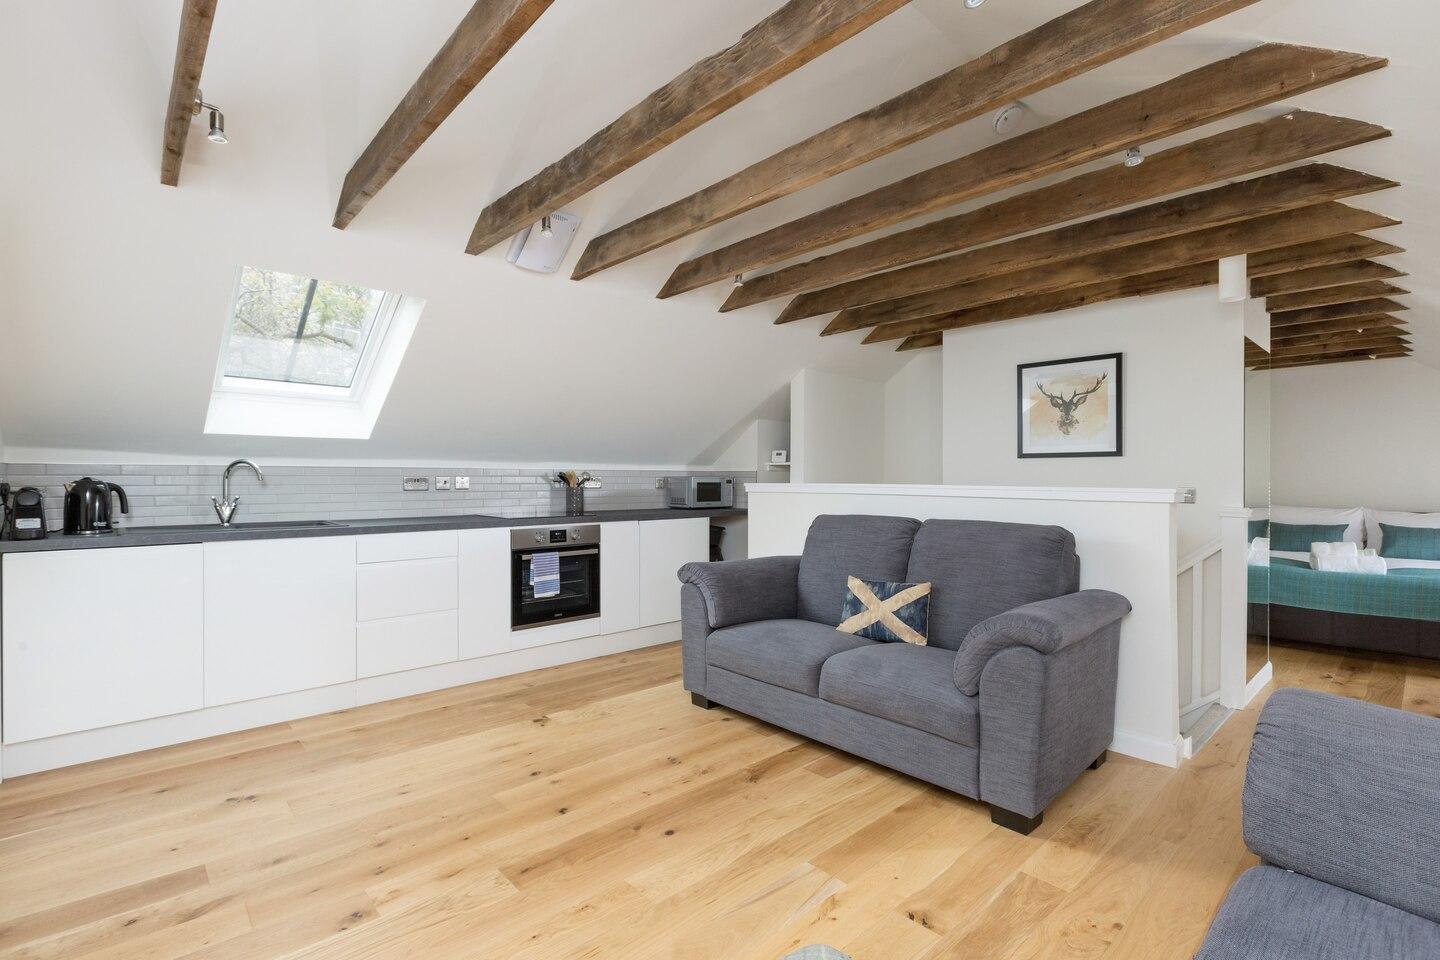 Stylish Mews House in The Heart of the City